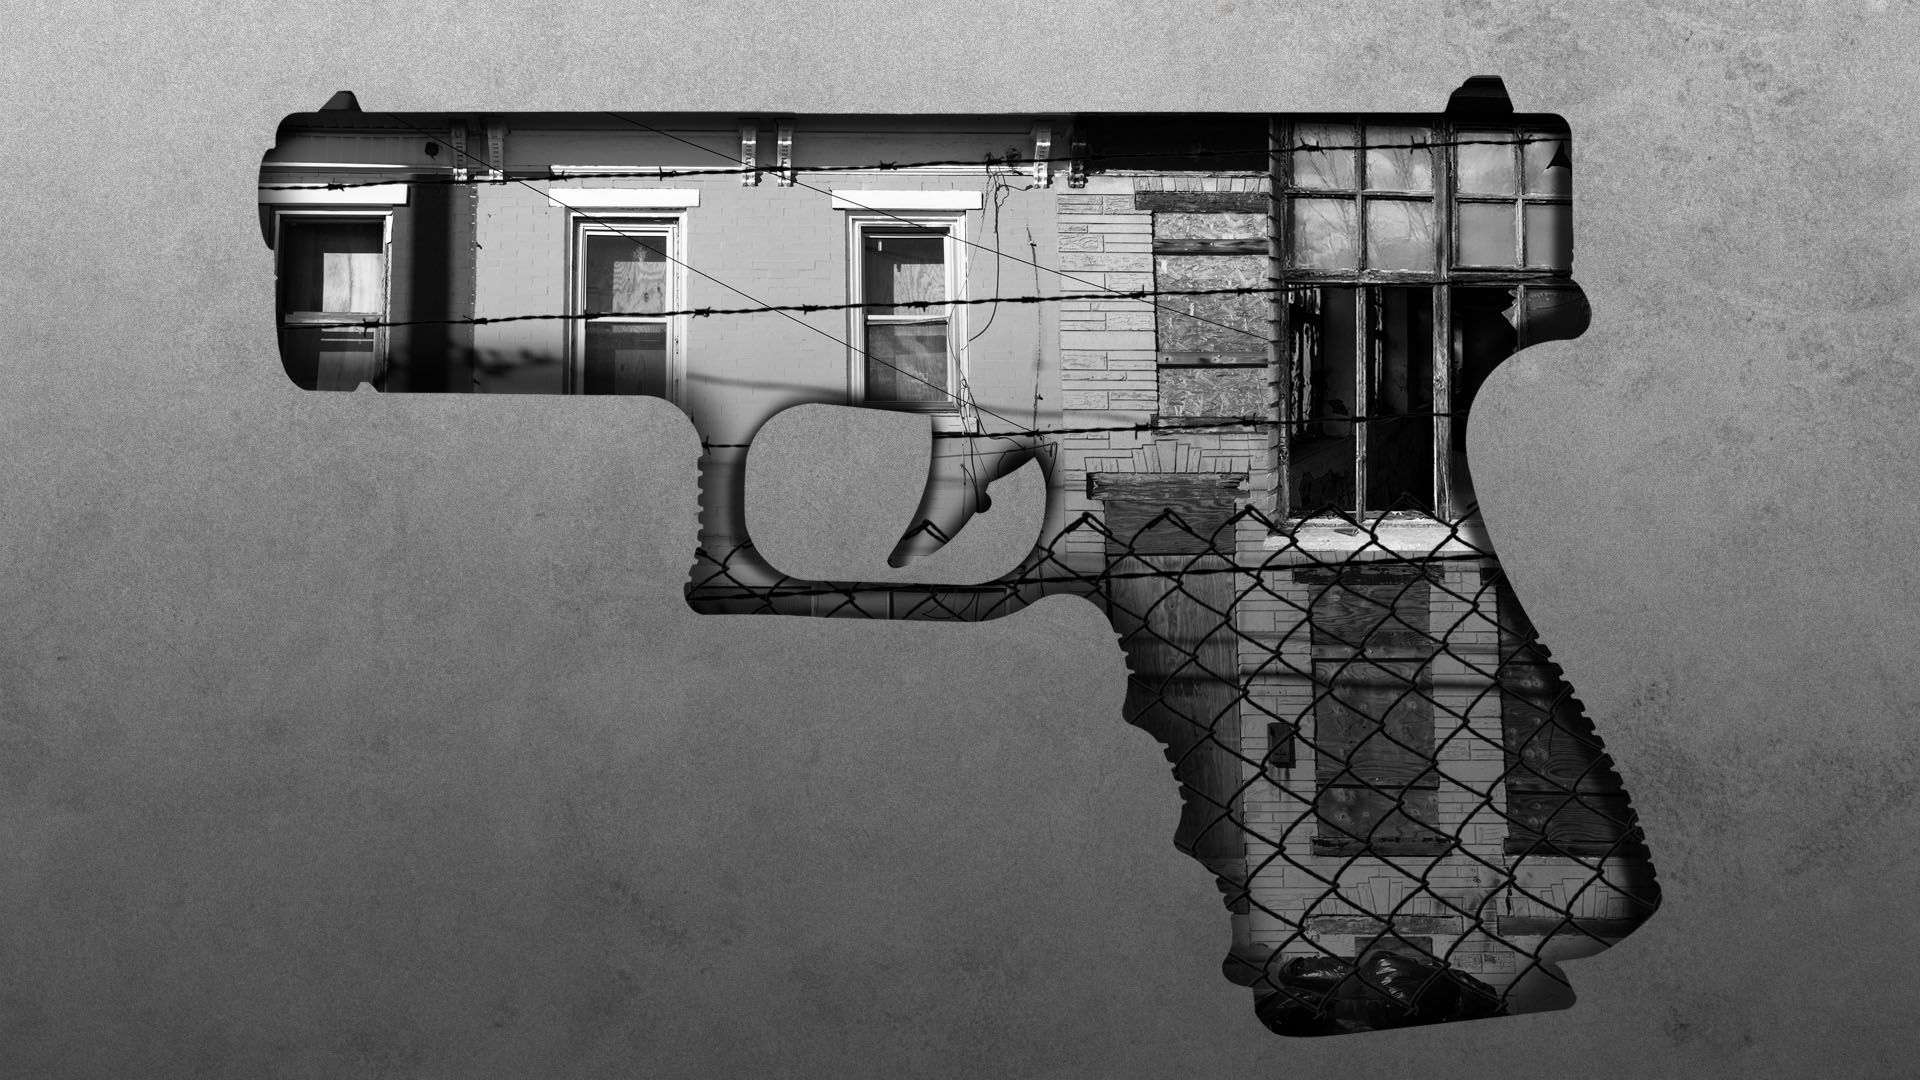 Illustration of boarded up homes, broken windows, and chain link fence in the shape of a firearm